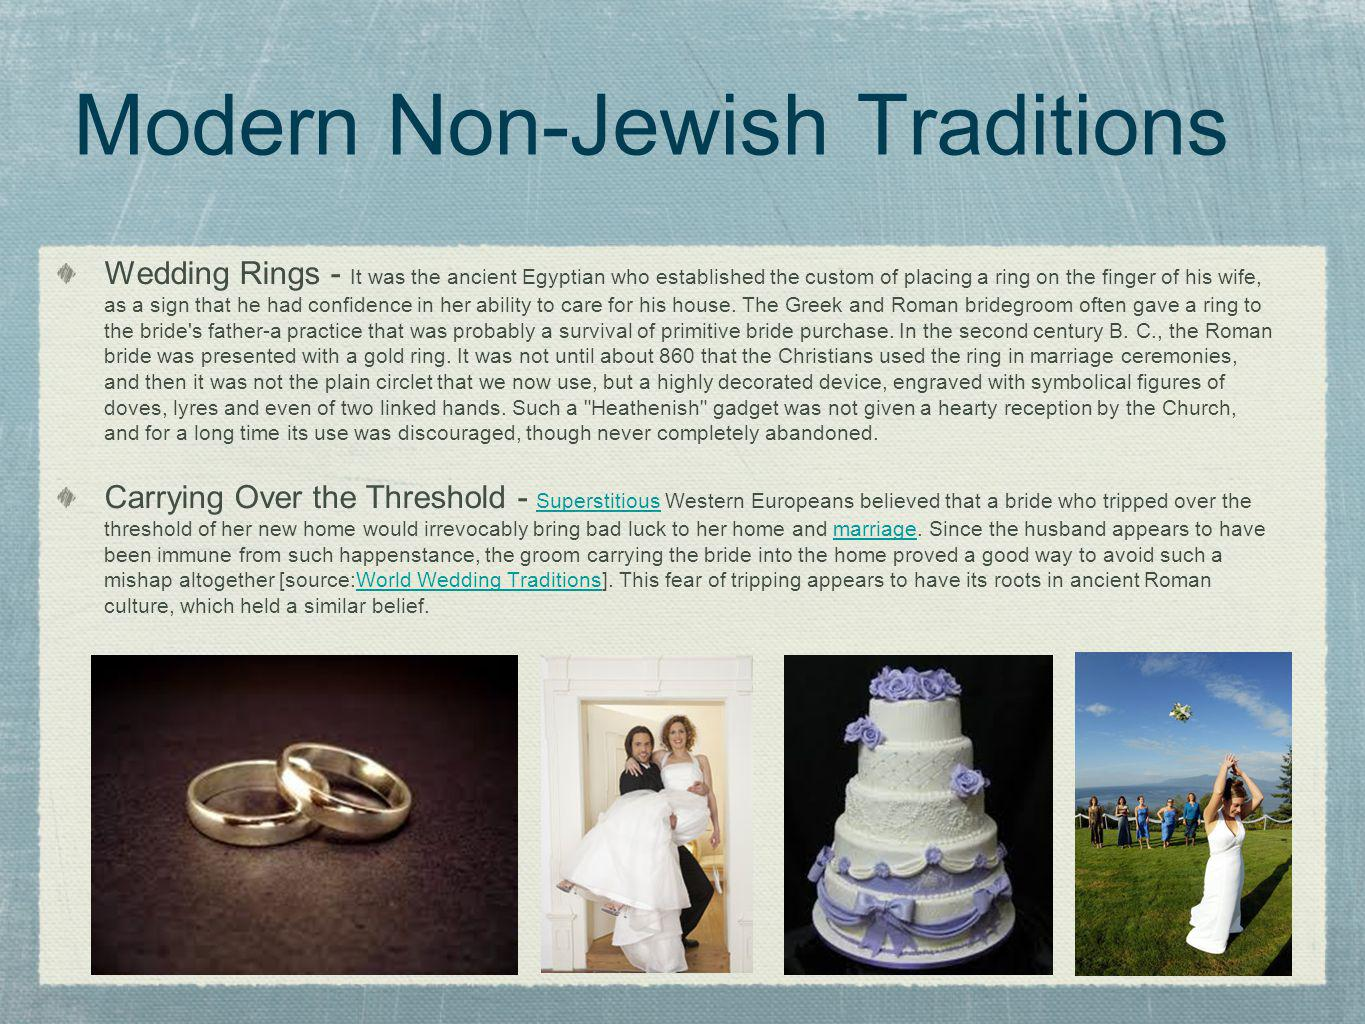 Modern Non-Jewish Traditions